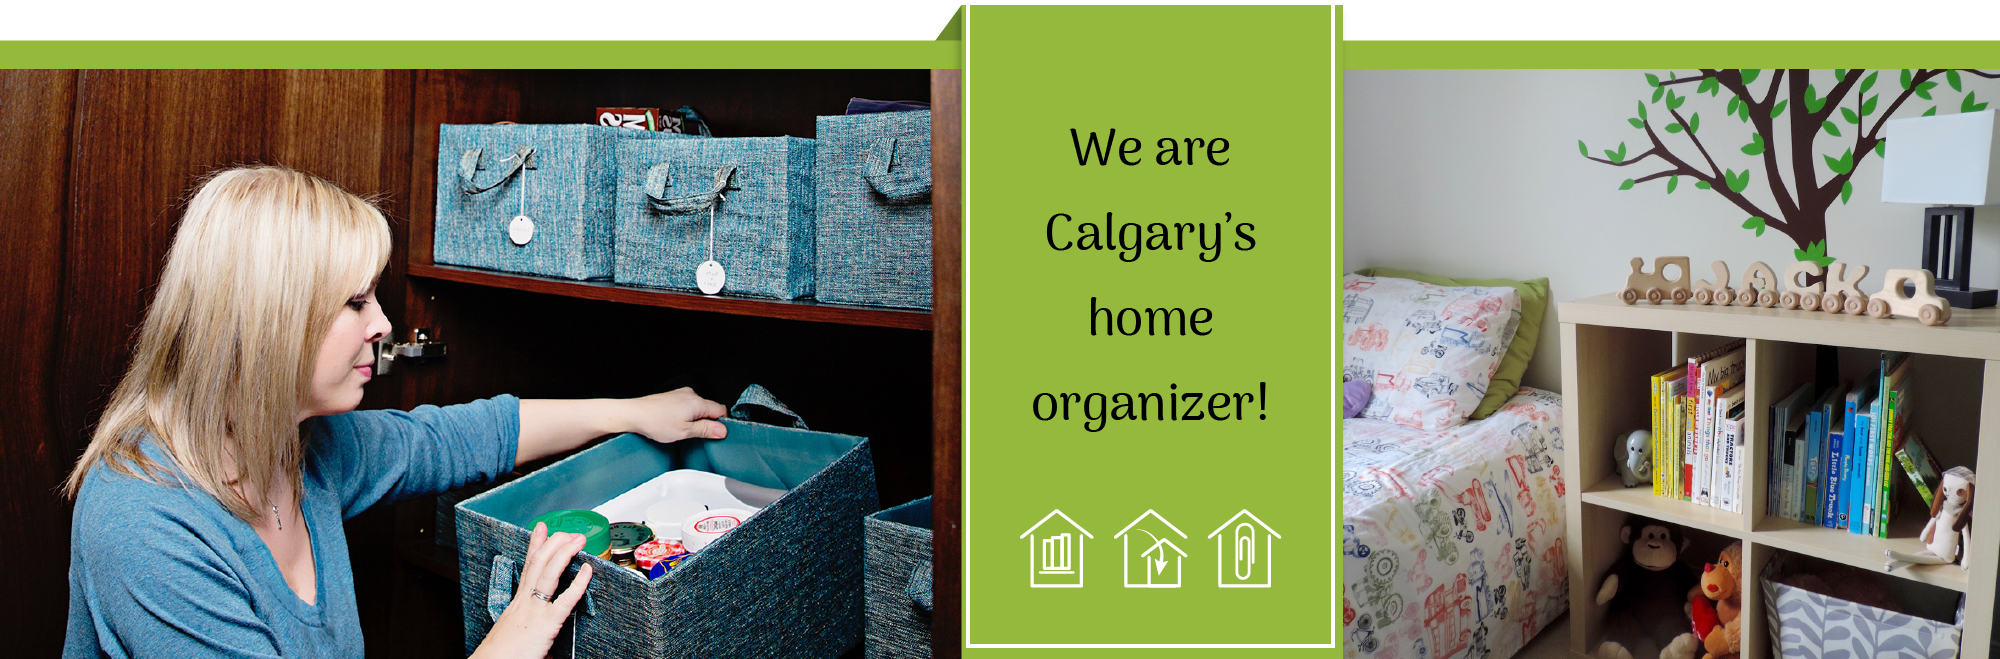 J 39 organizing calgary professional organizer for New home construction organizer